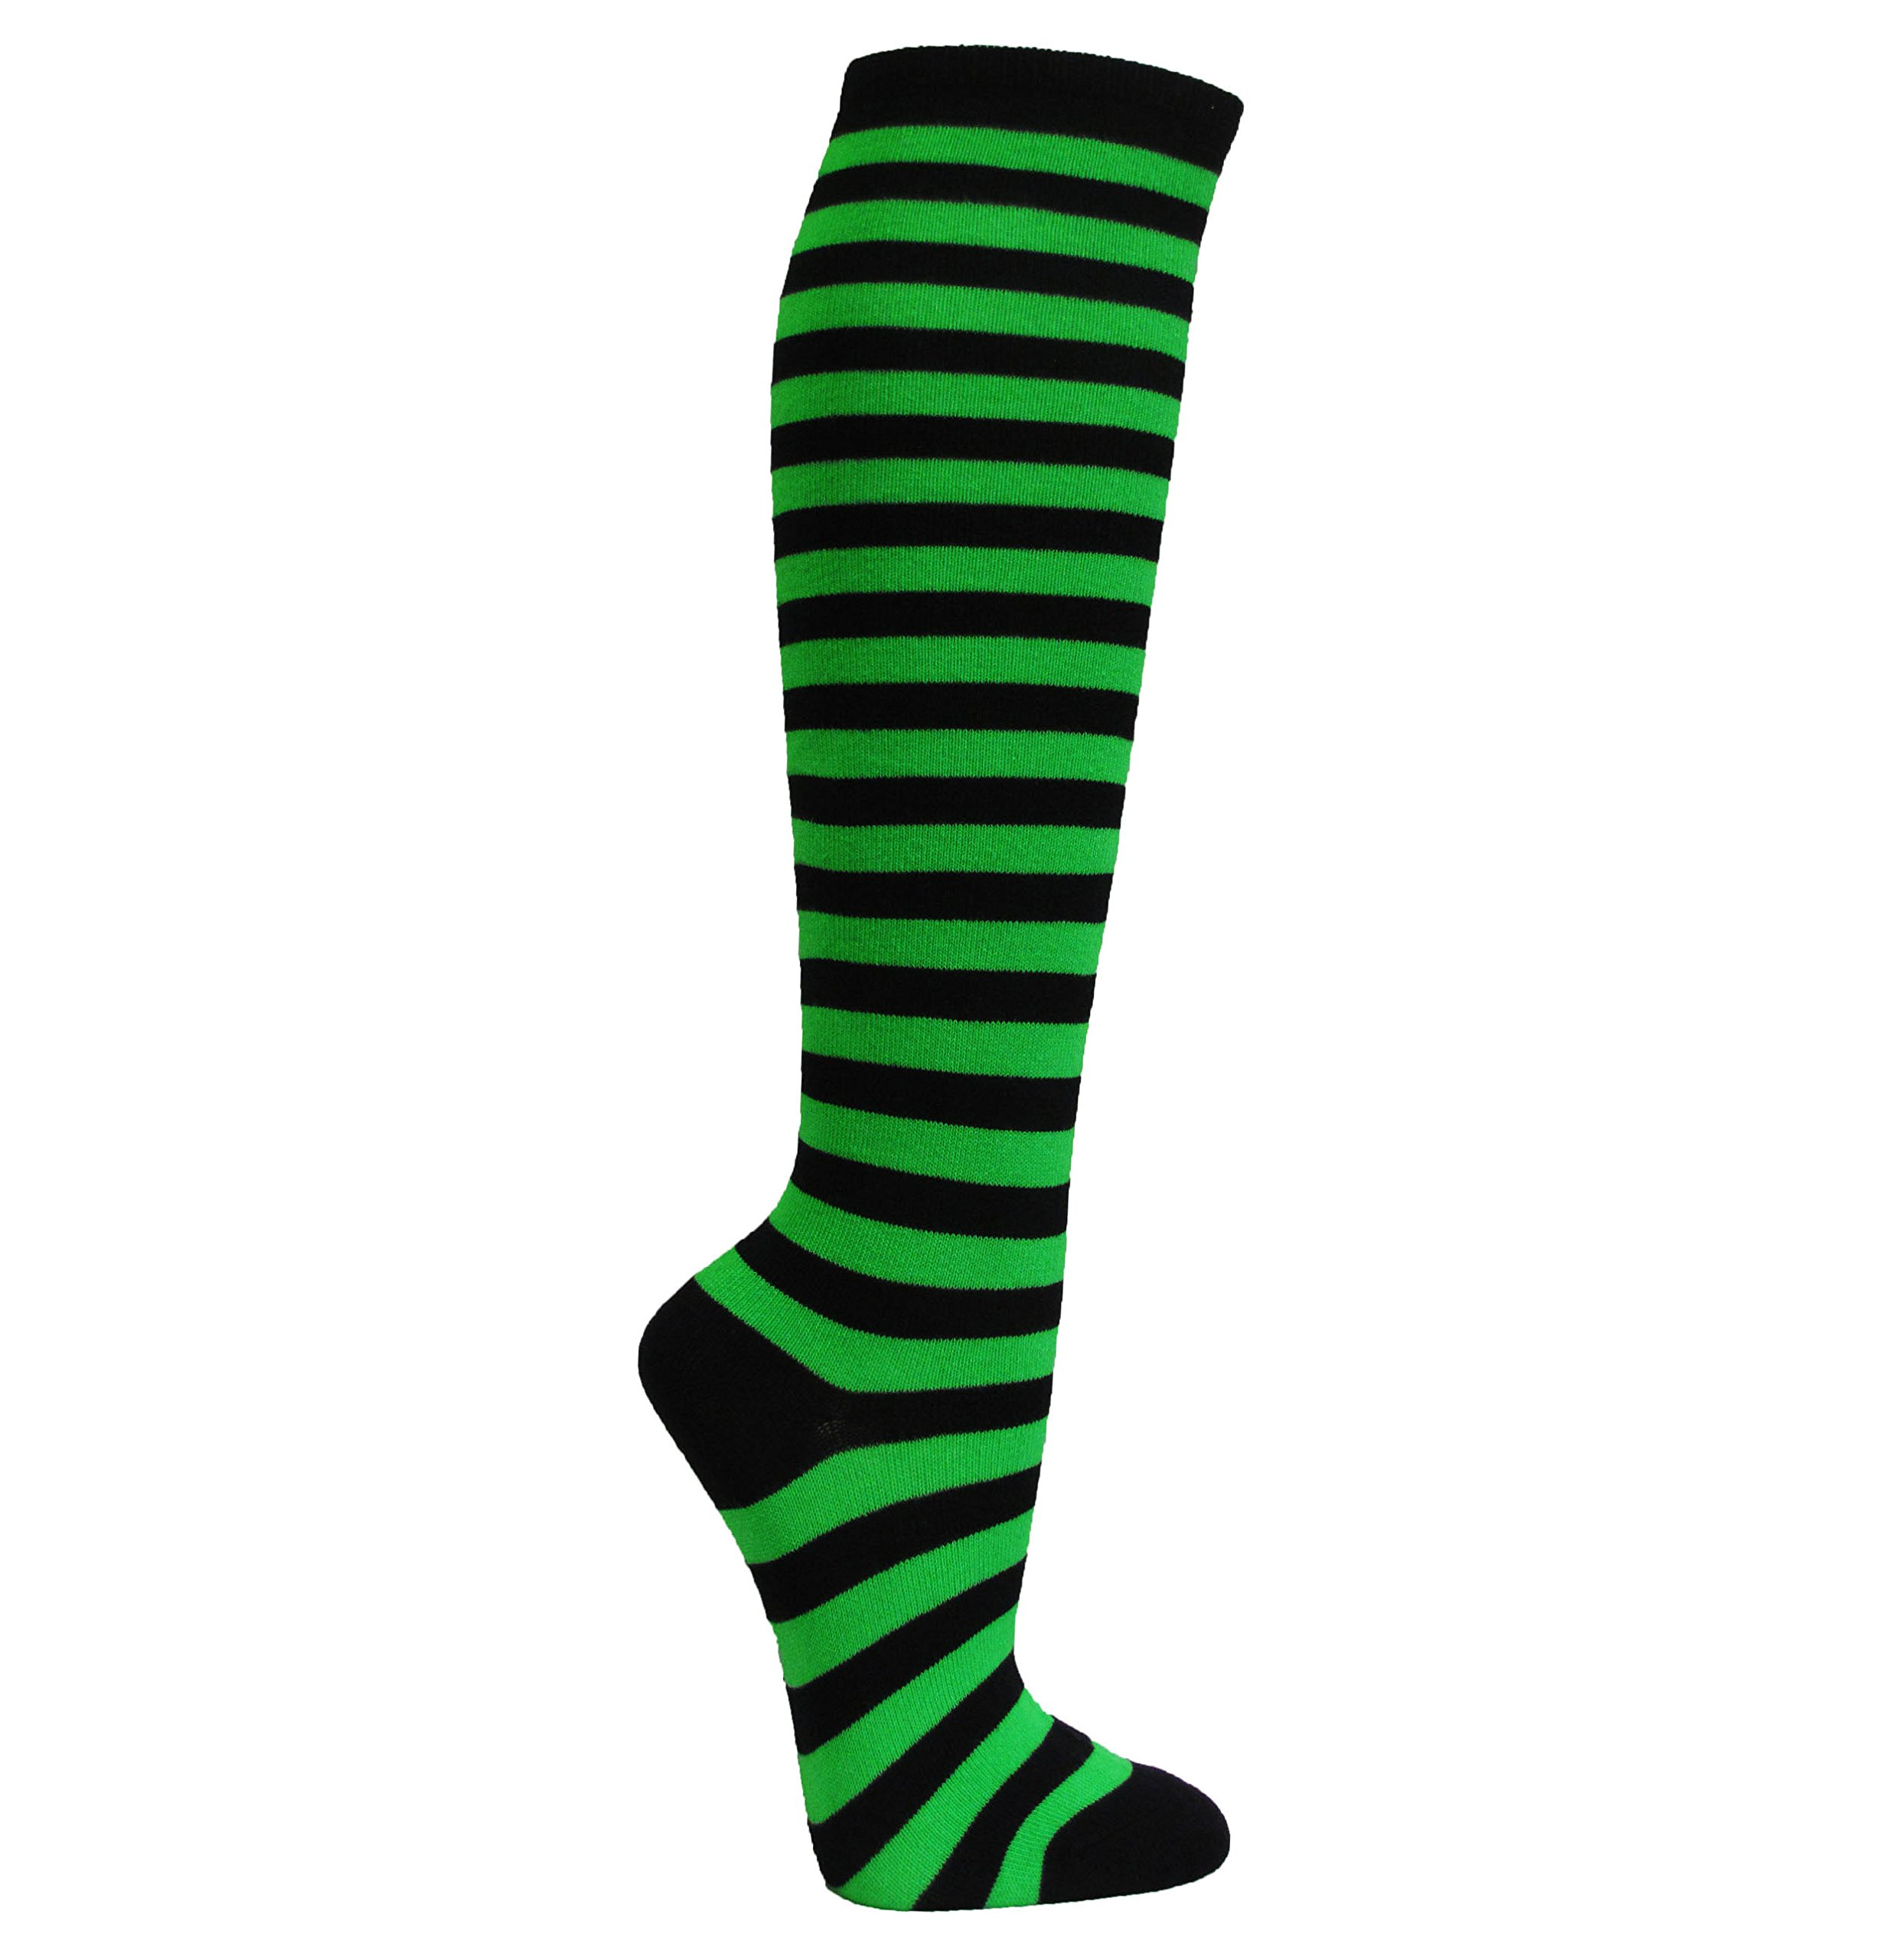 Couver Striped Knee High Fashion/Casual Tube Cotton Socks Great for Halloween Costume(Assorted Colors)(1 Pair)